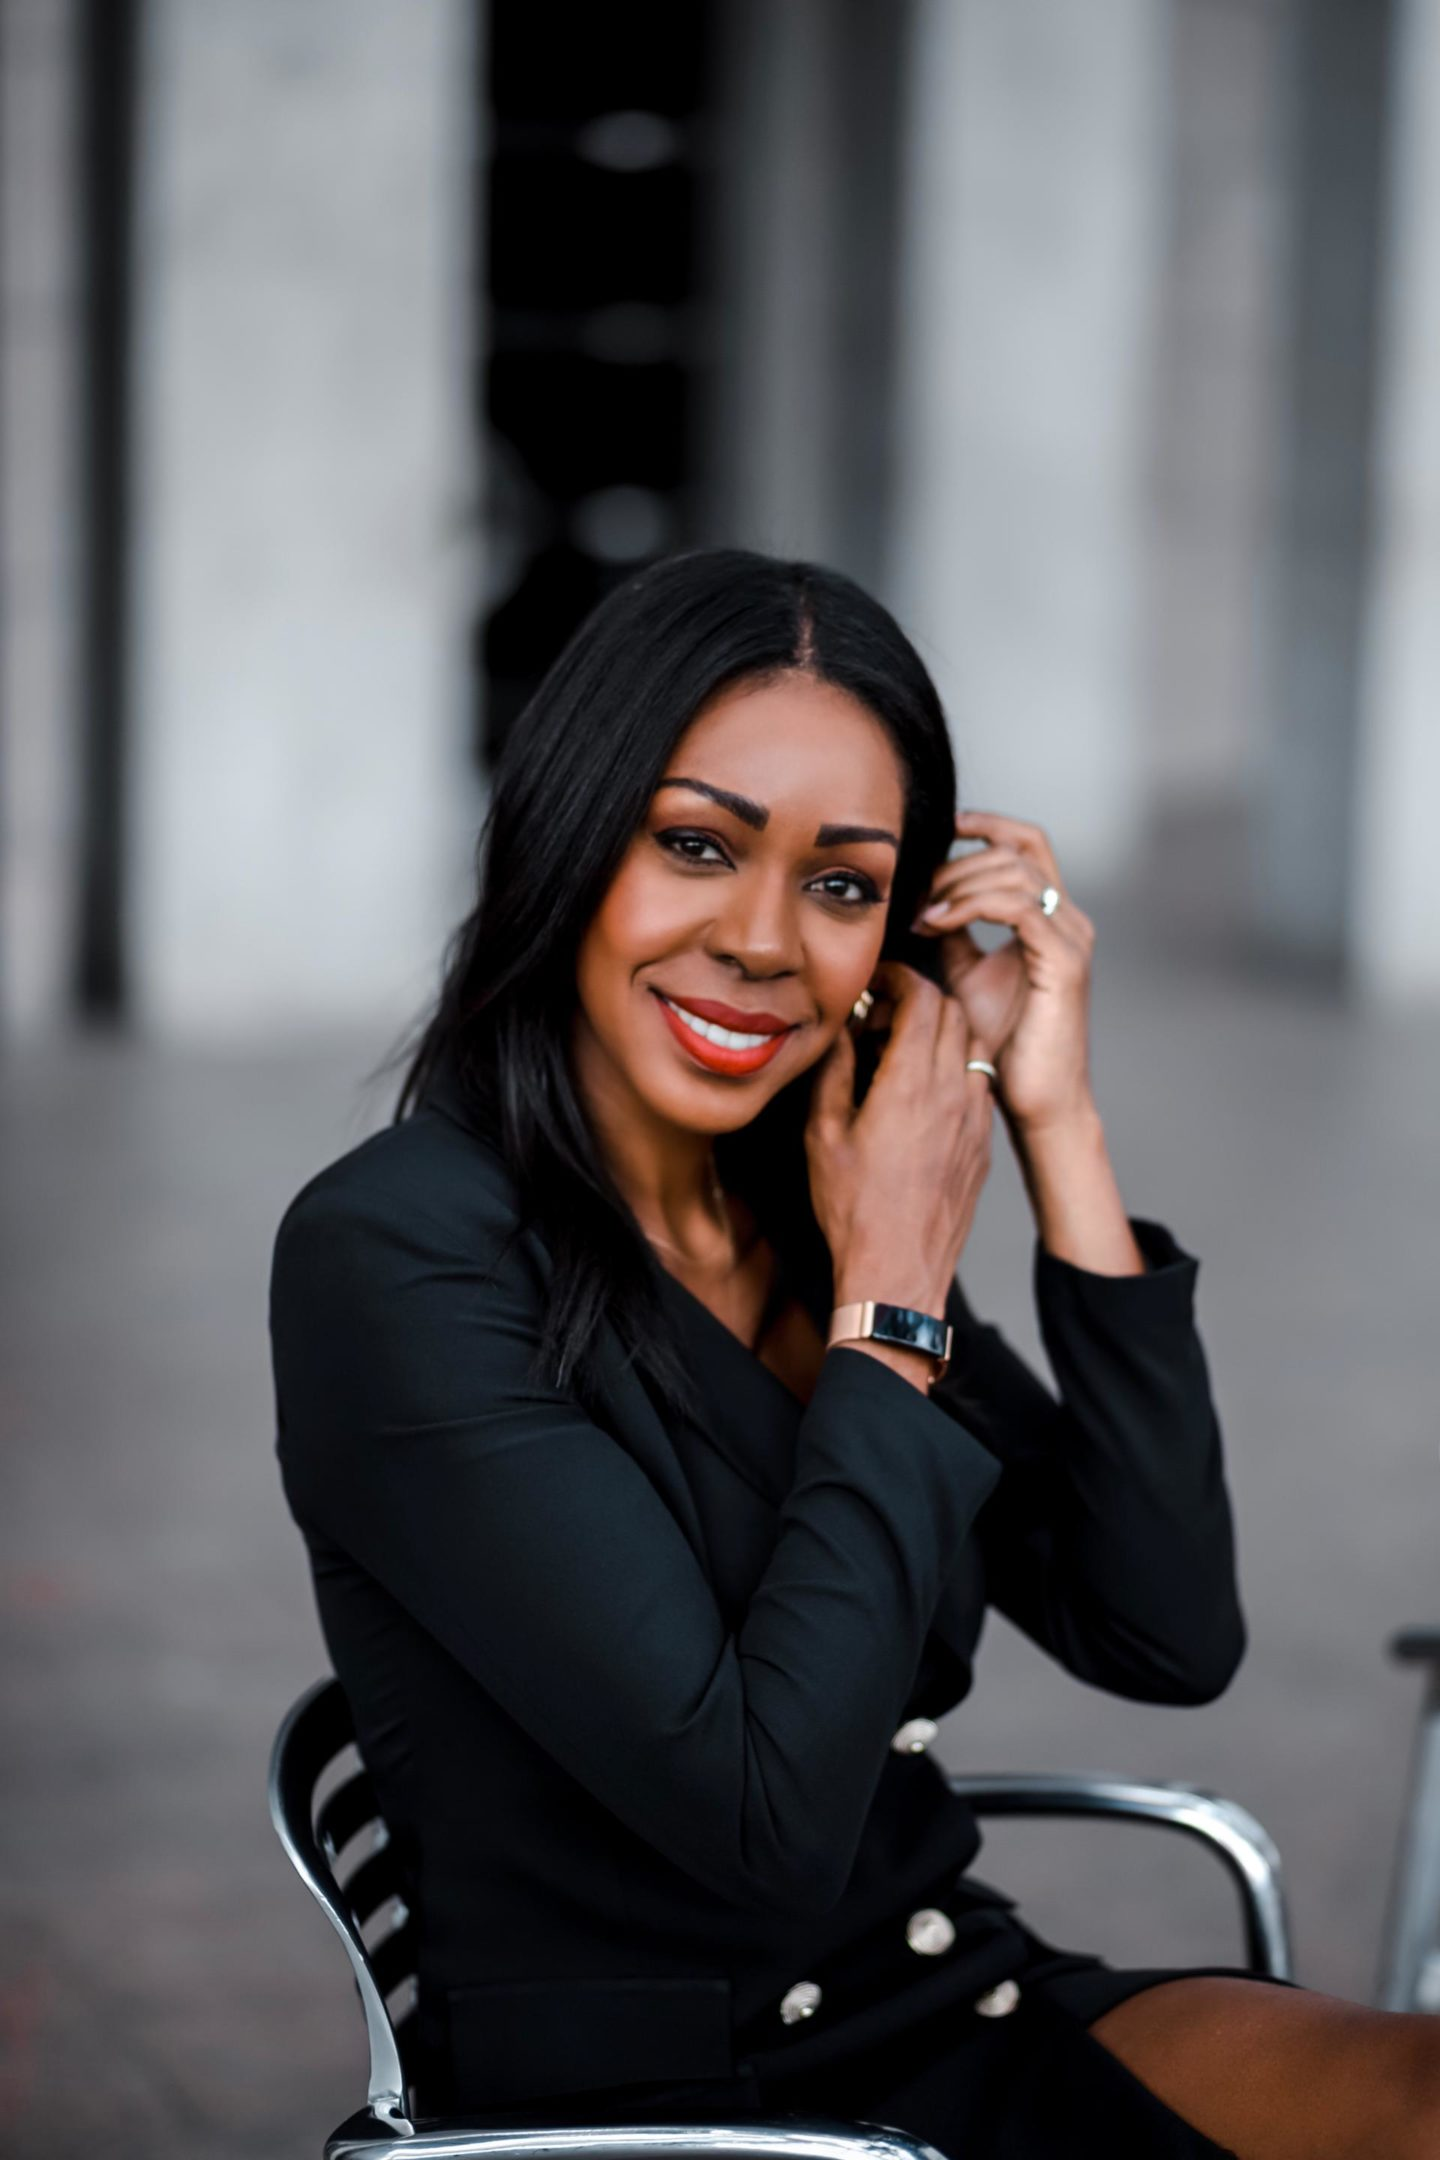 Dominique Baker fixing her earring while wearing the Fitbit Inspire HR Fitness Tracker